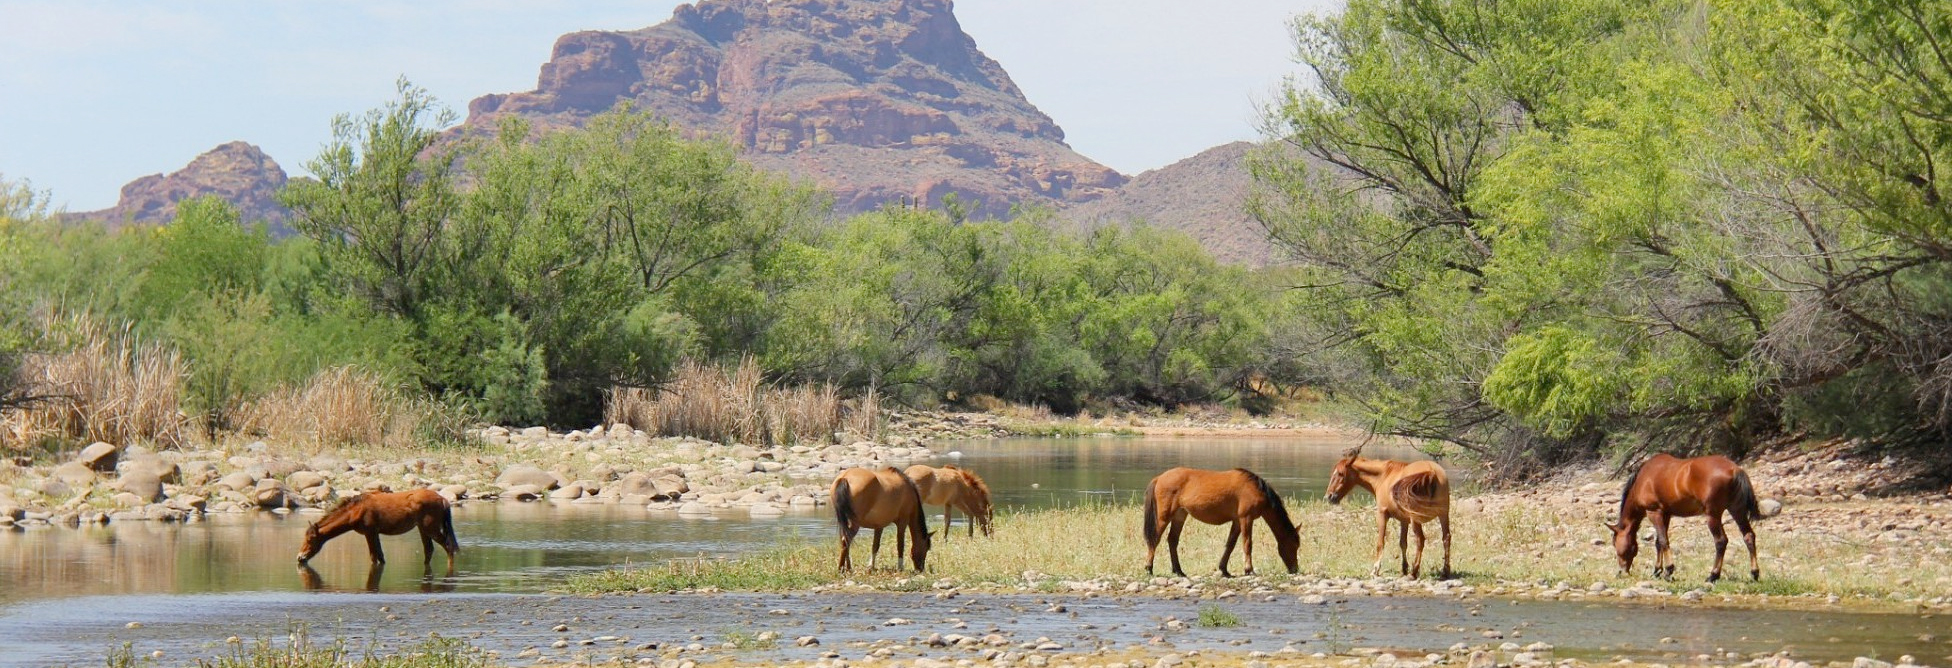 Less than 500 wild horses remain on public lands in Arizona.